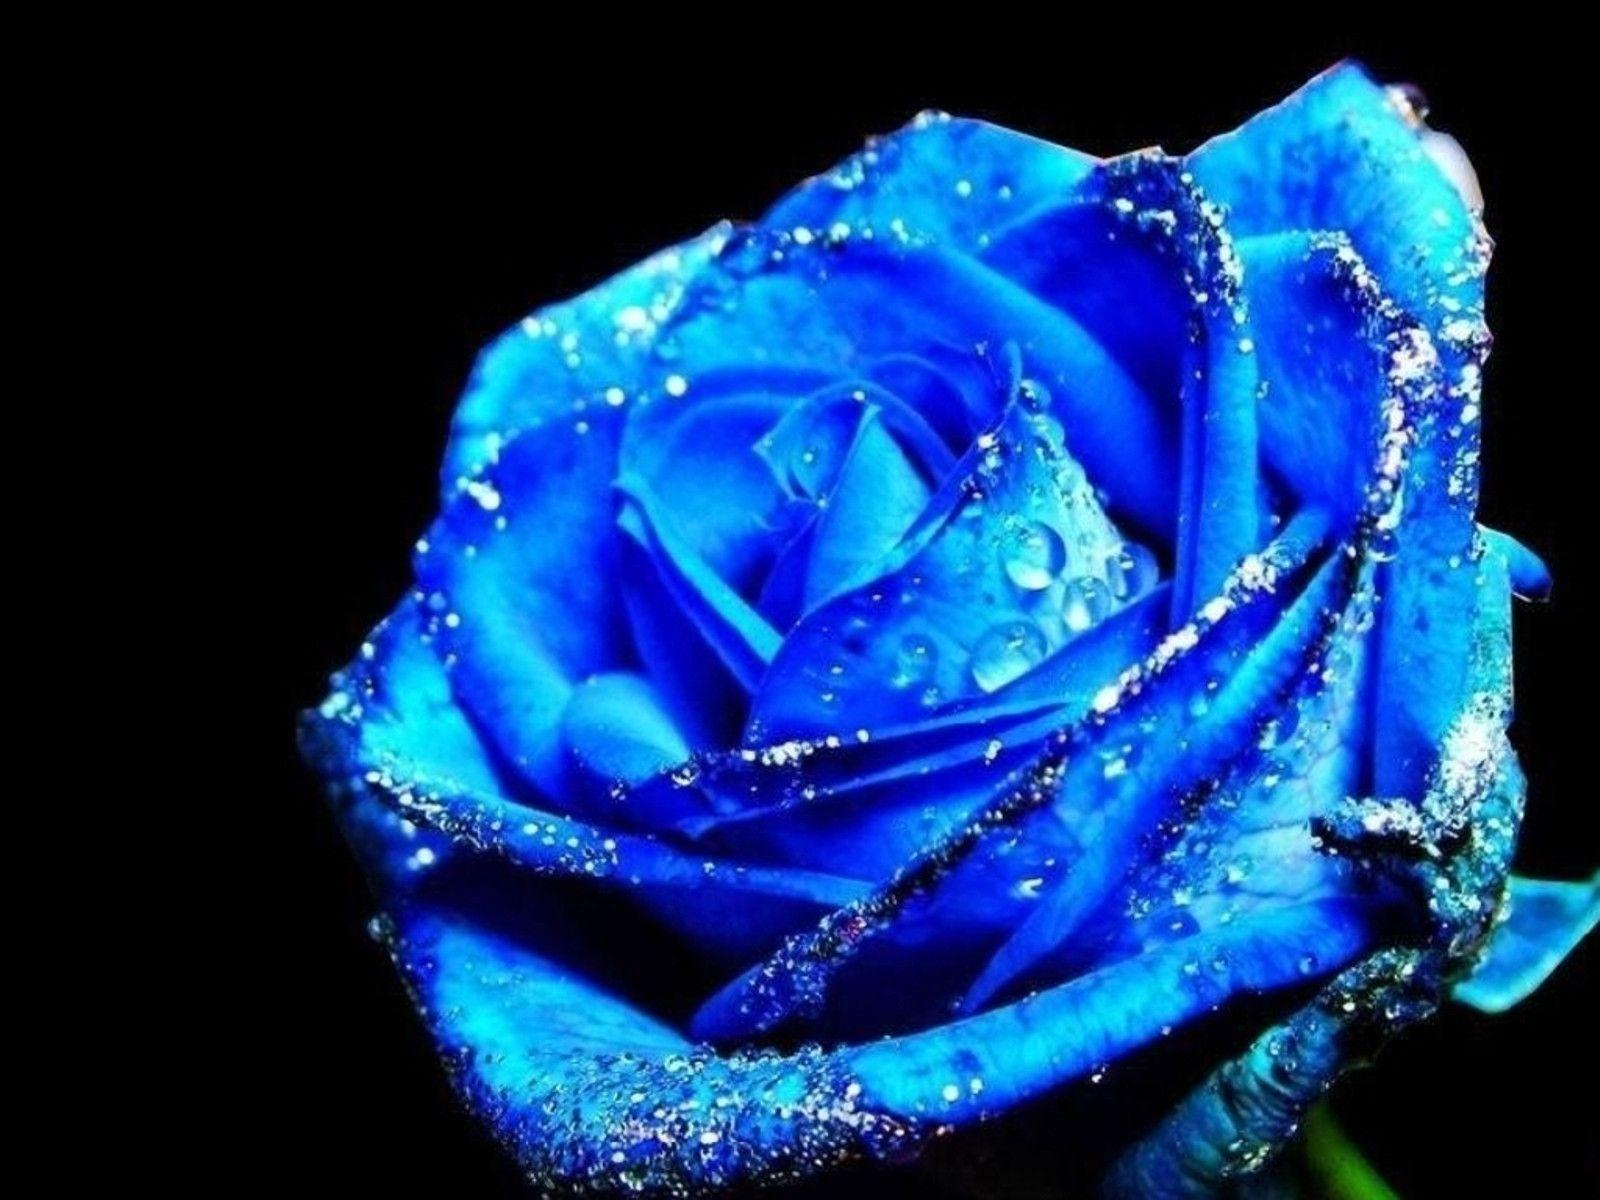 Blue Rose Wallpapers Top Free Blue Rose Backgrounds Wallpaperaccess